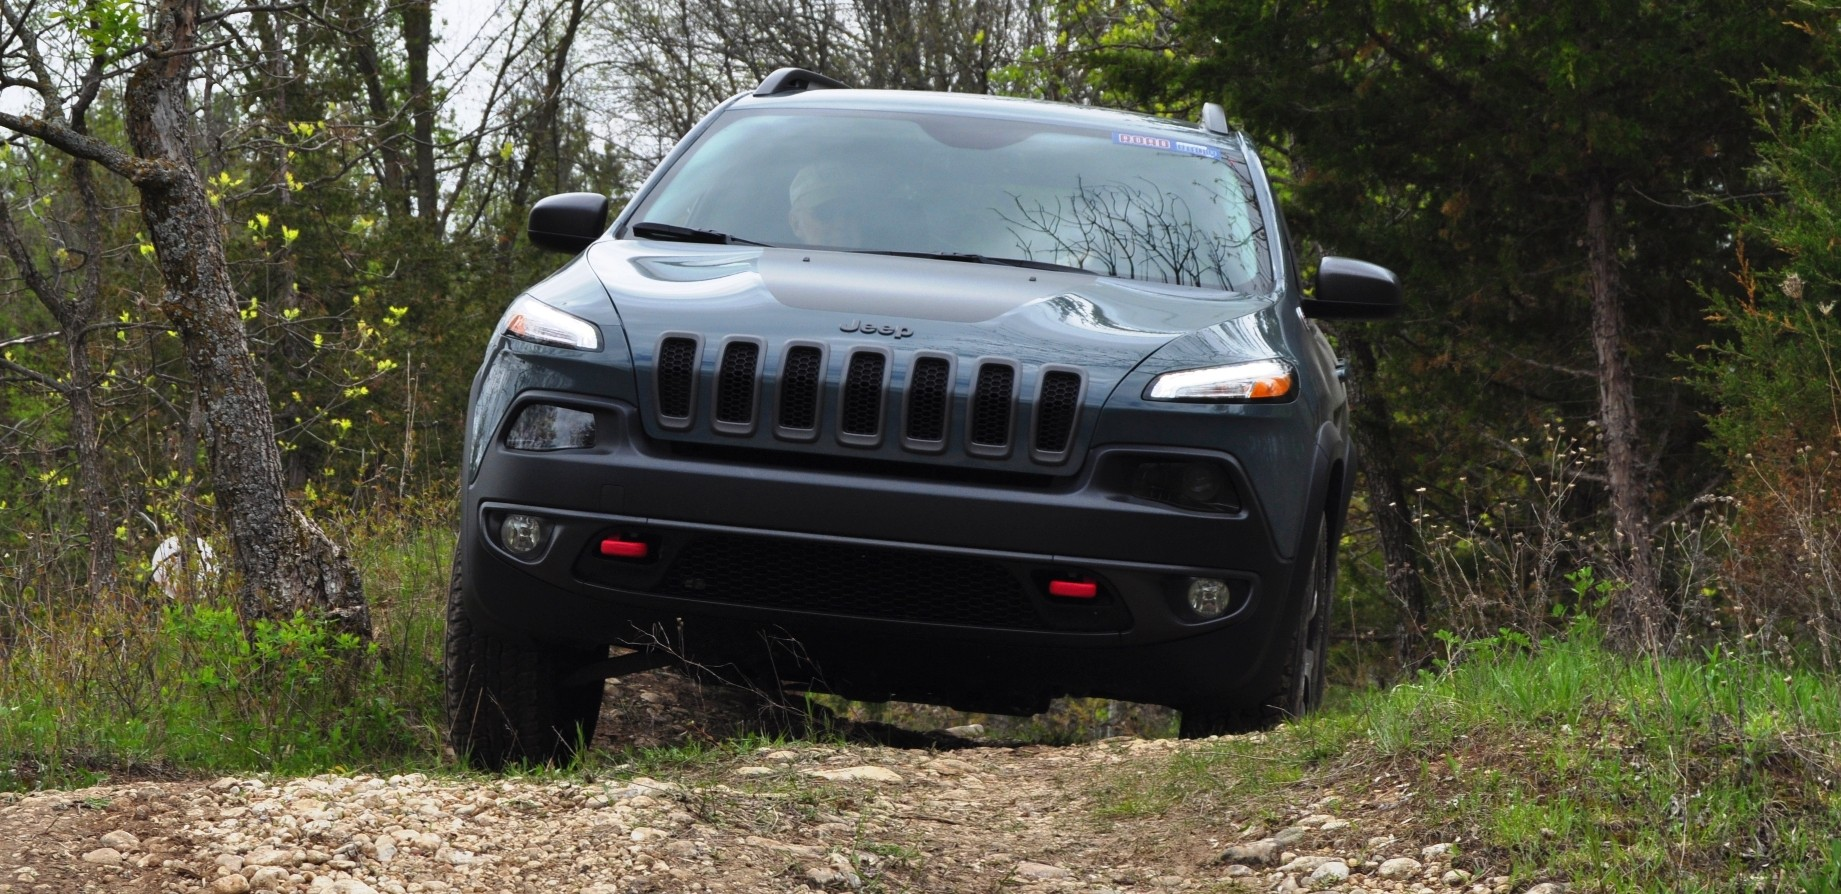 Jeep Trails Off Road Test Review 2014 Jeep Cherokee Trailhawk On Some Tough